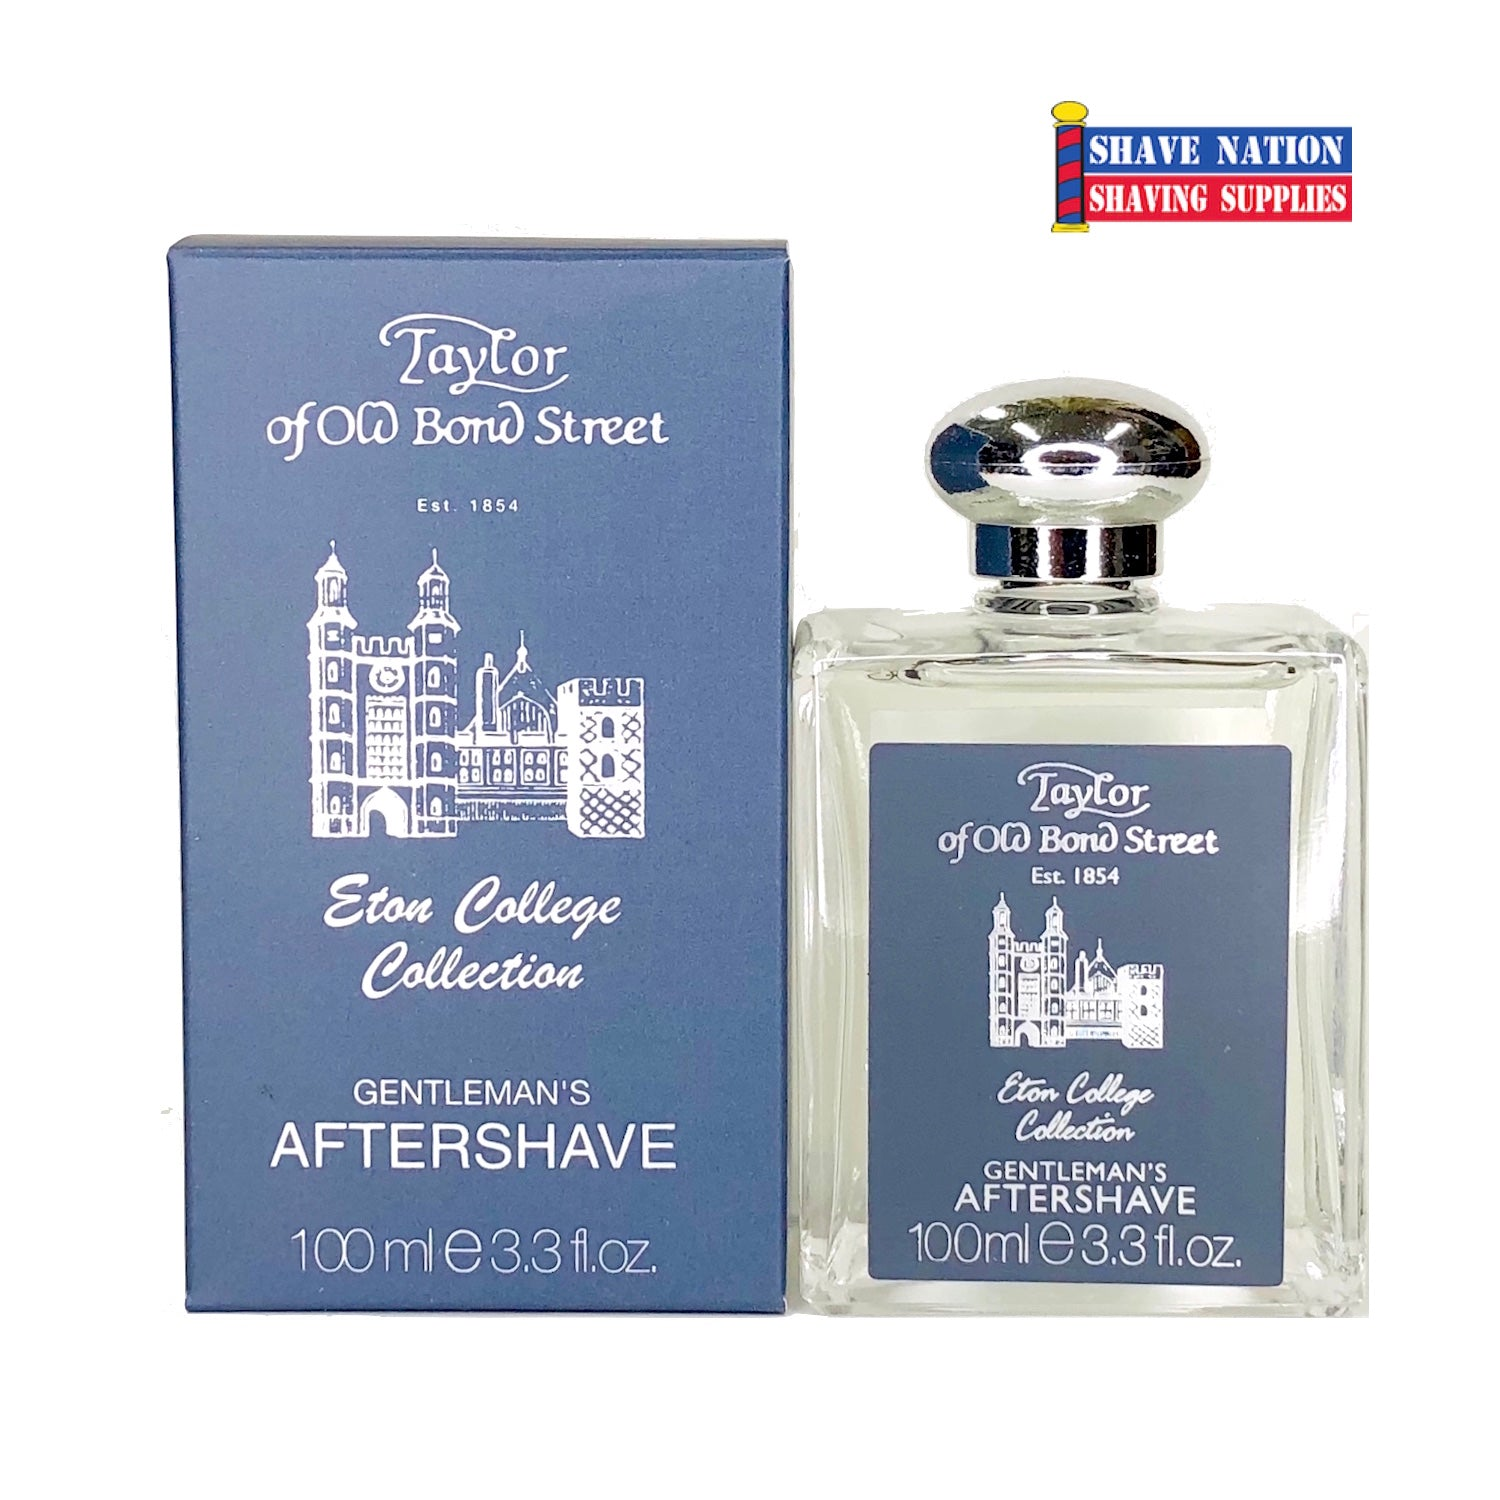 Taylor of Old Bond Street Eton College Gentleman's Aftershave